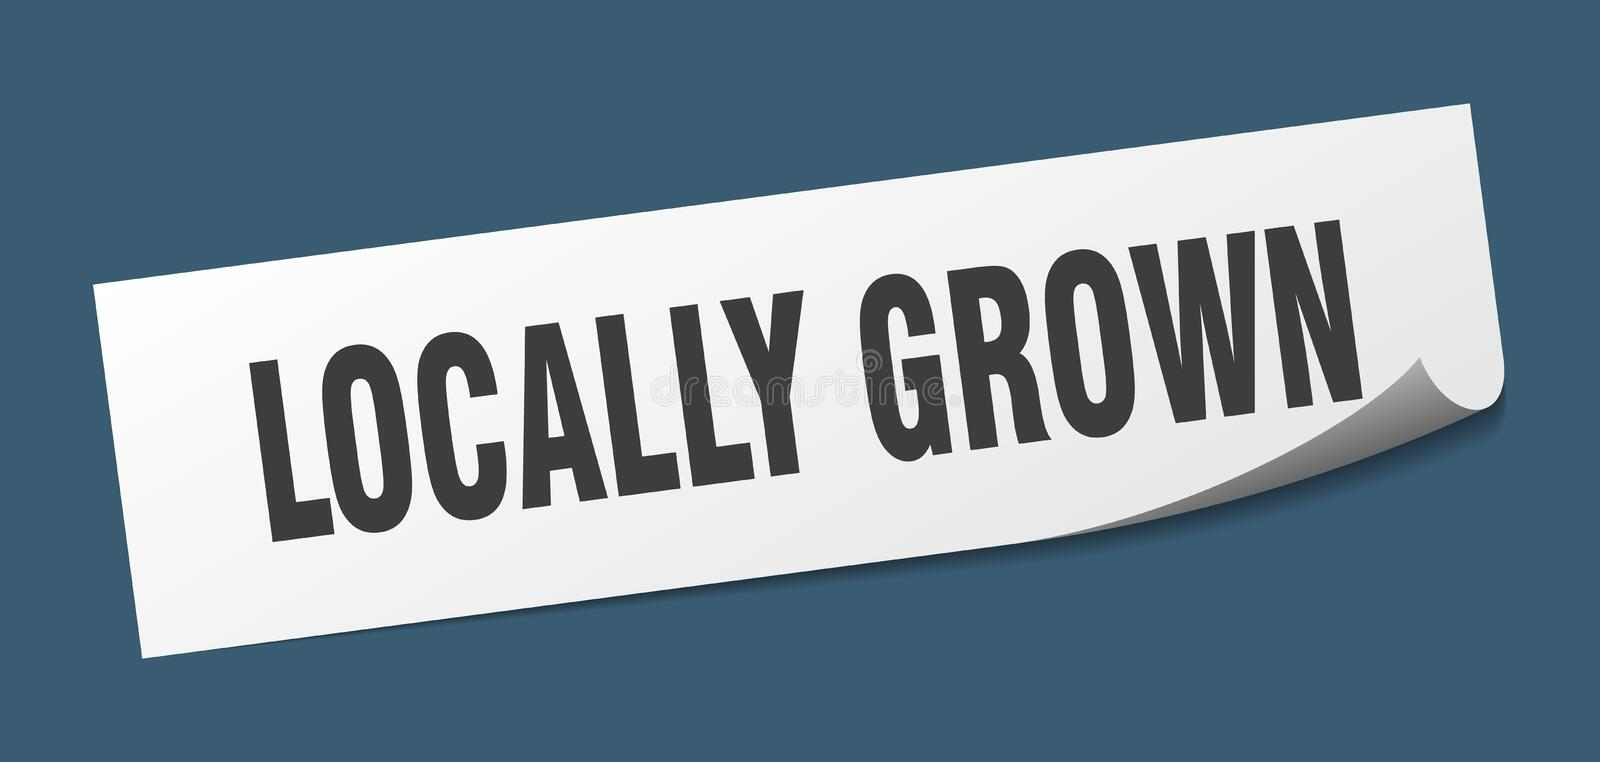 Locally grown sticker. Locally grown square sign. locally grown royalty free illustration